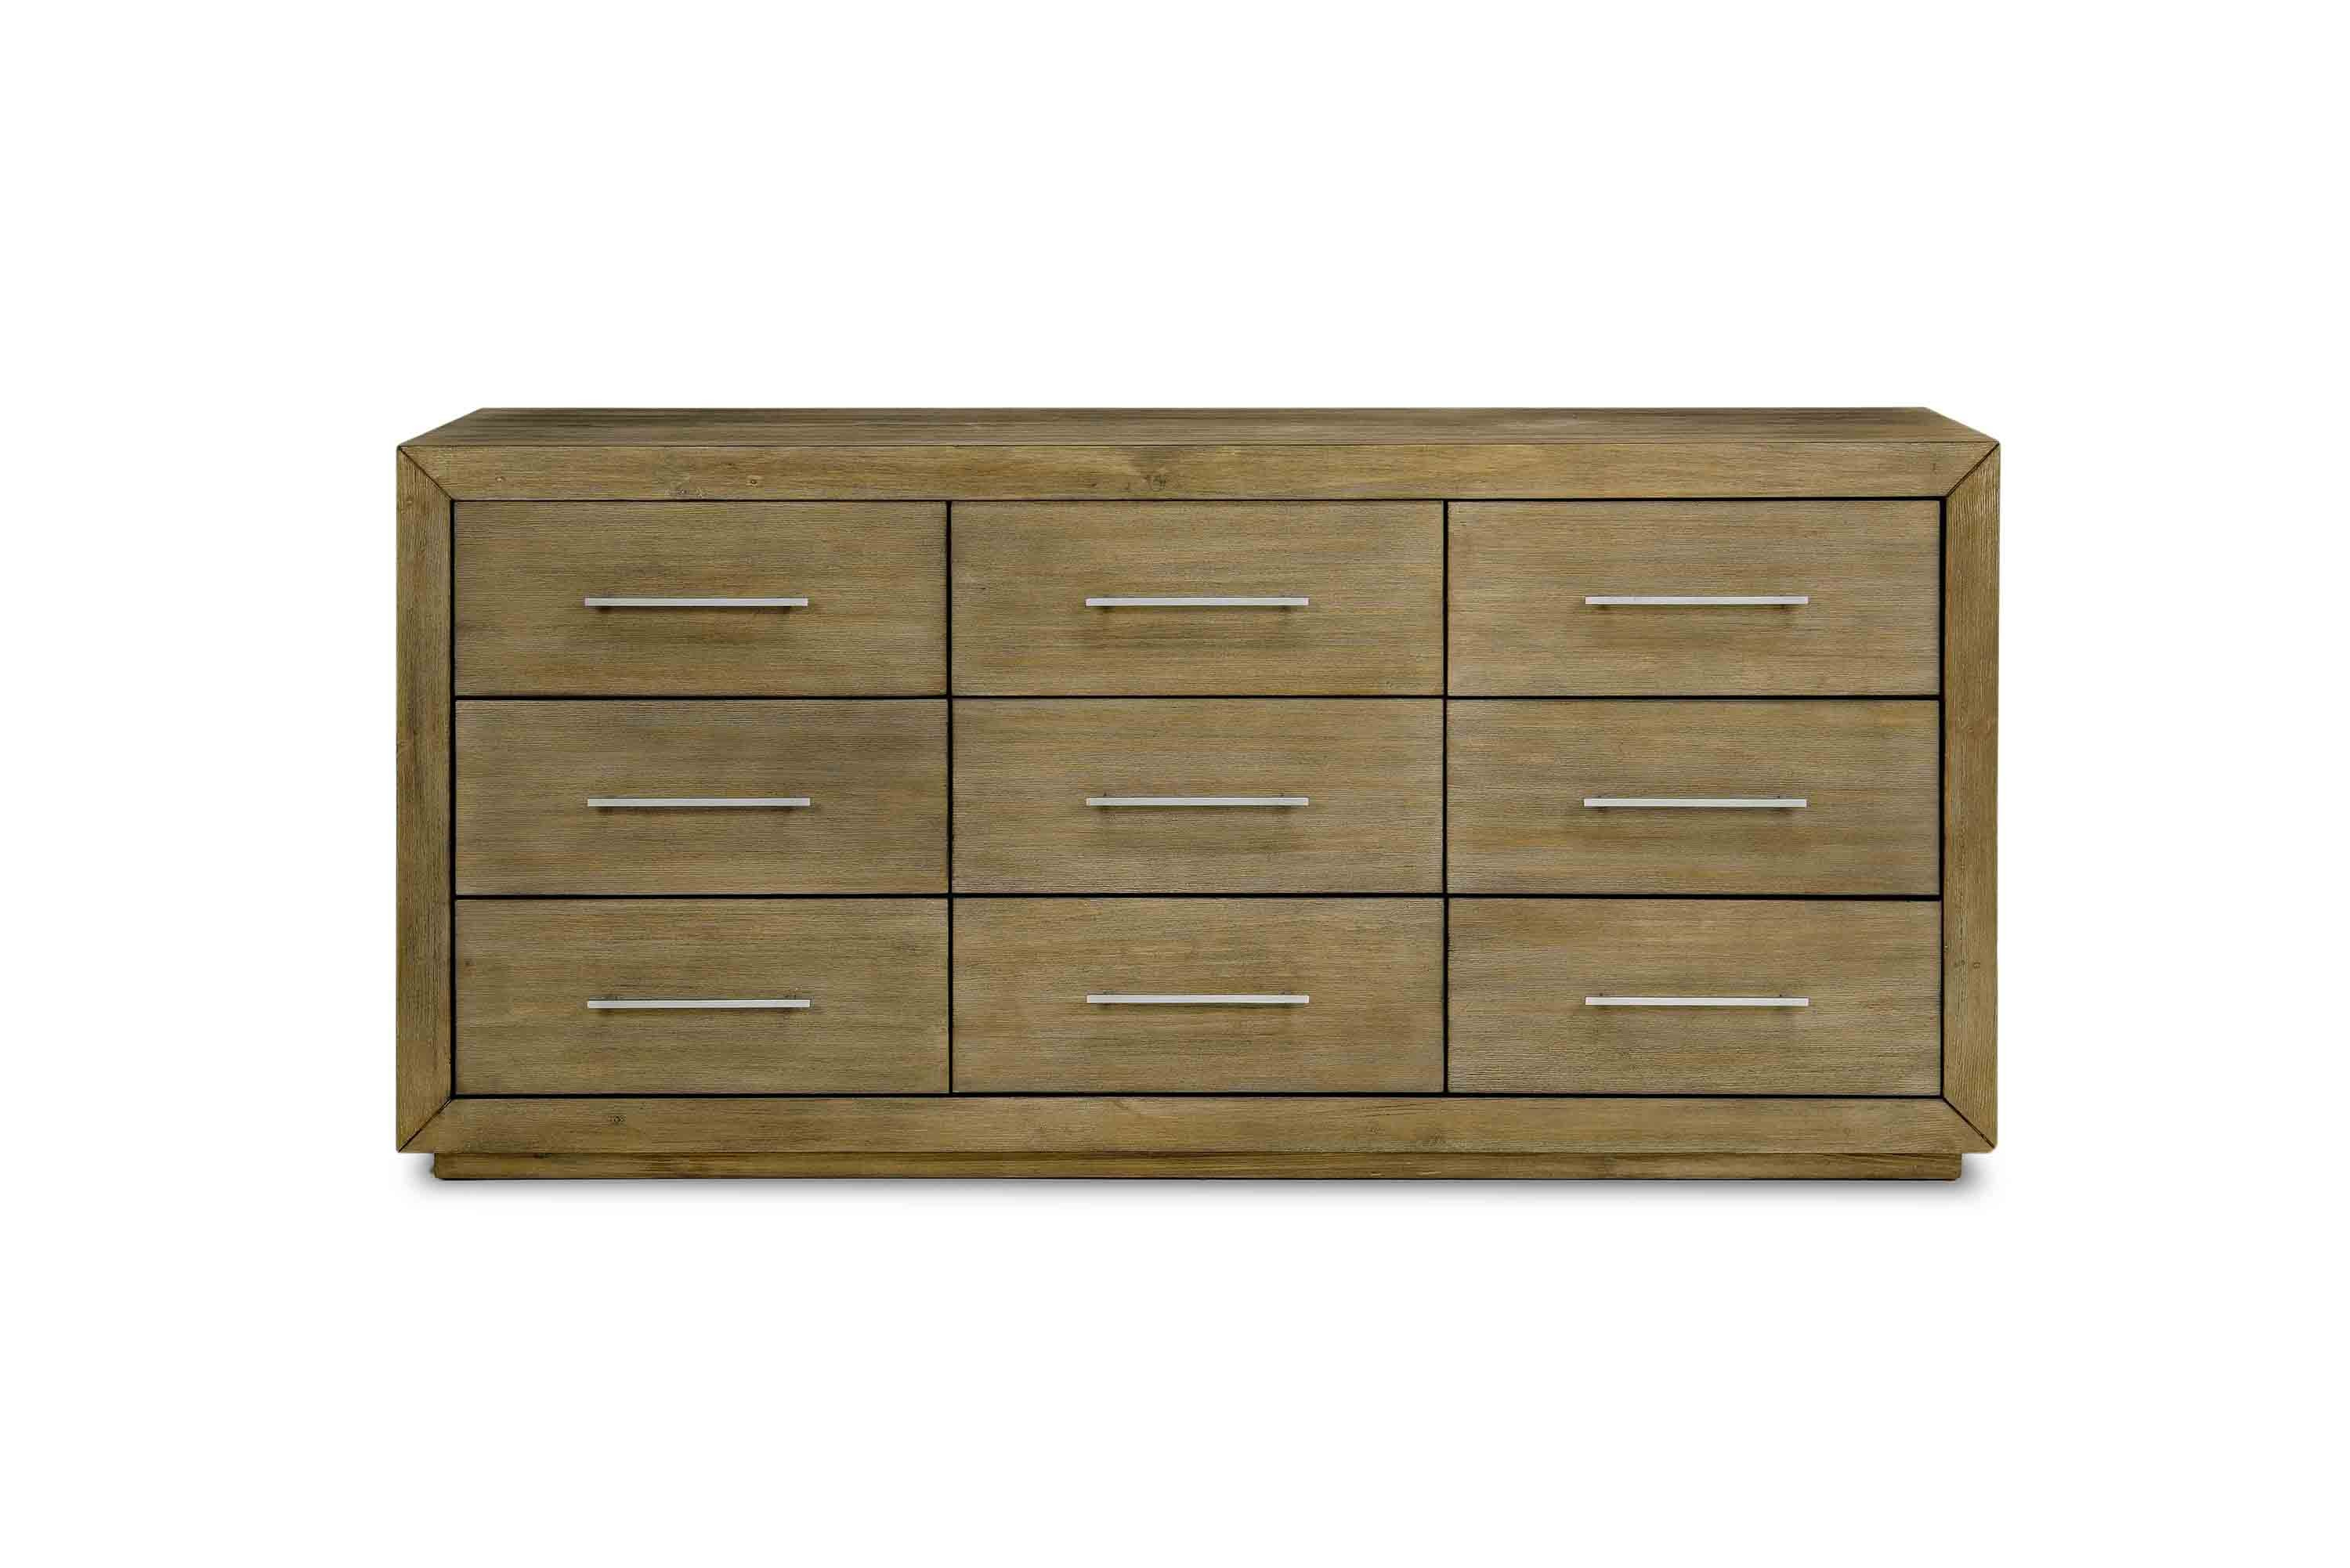 Dresser Melbourne Melbourne Dresser Mor Furniture For Less